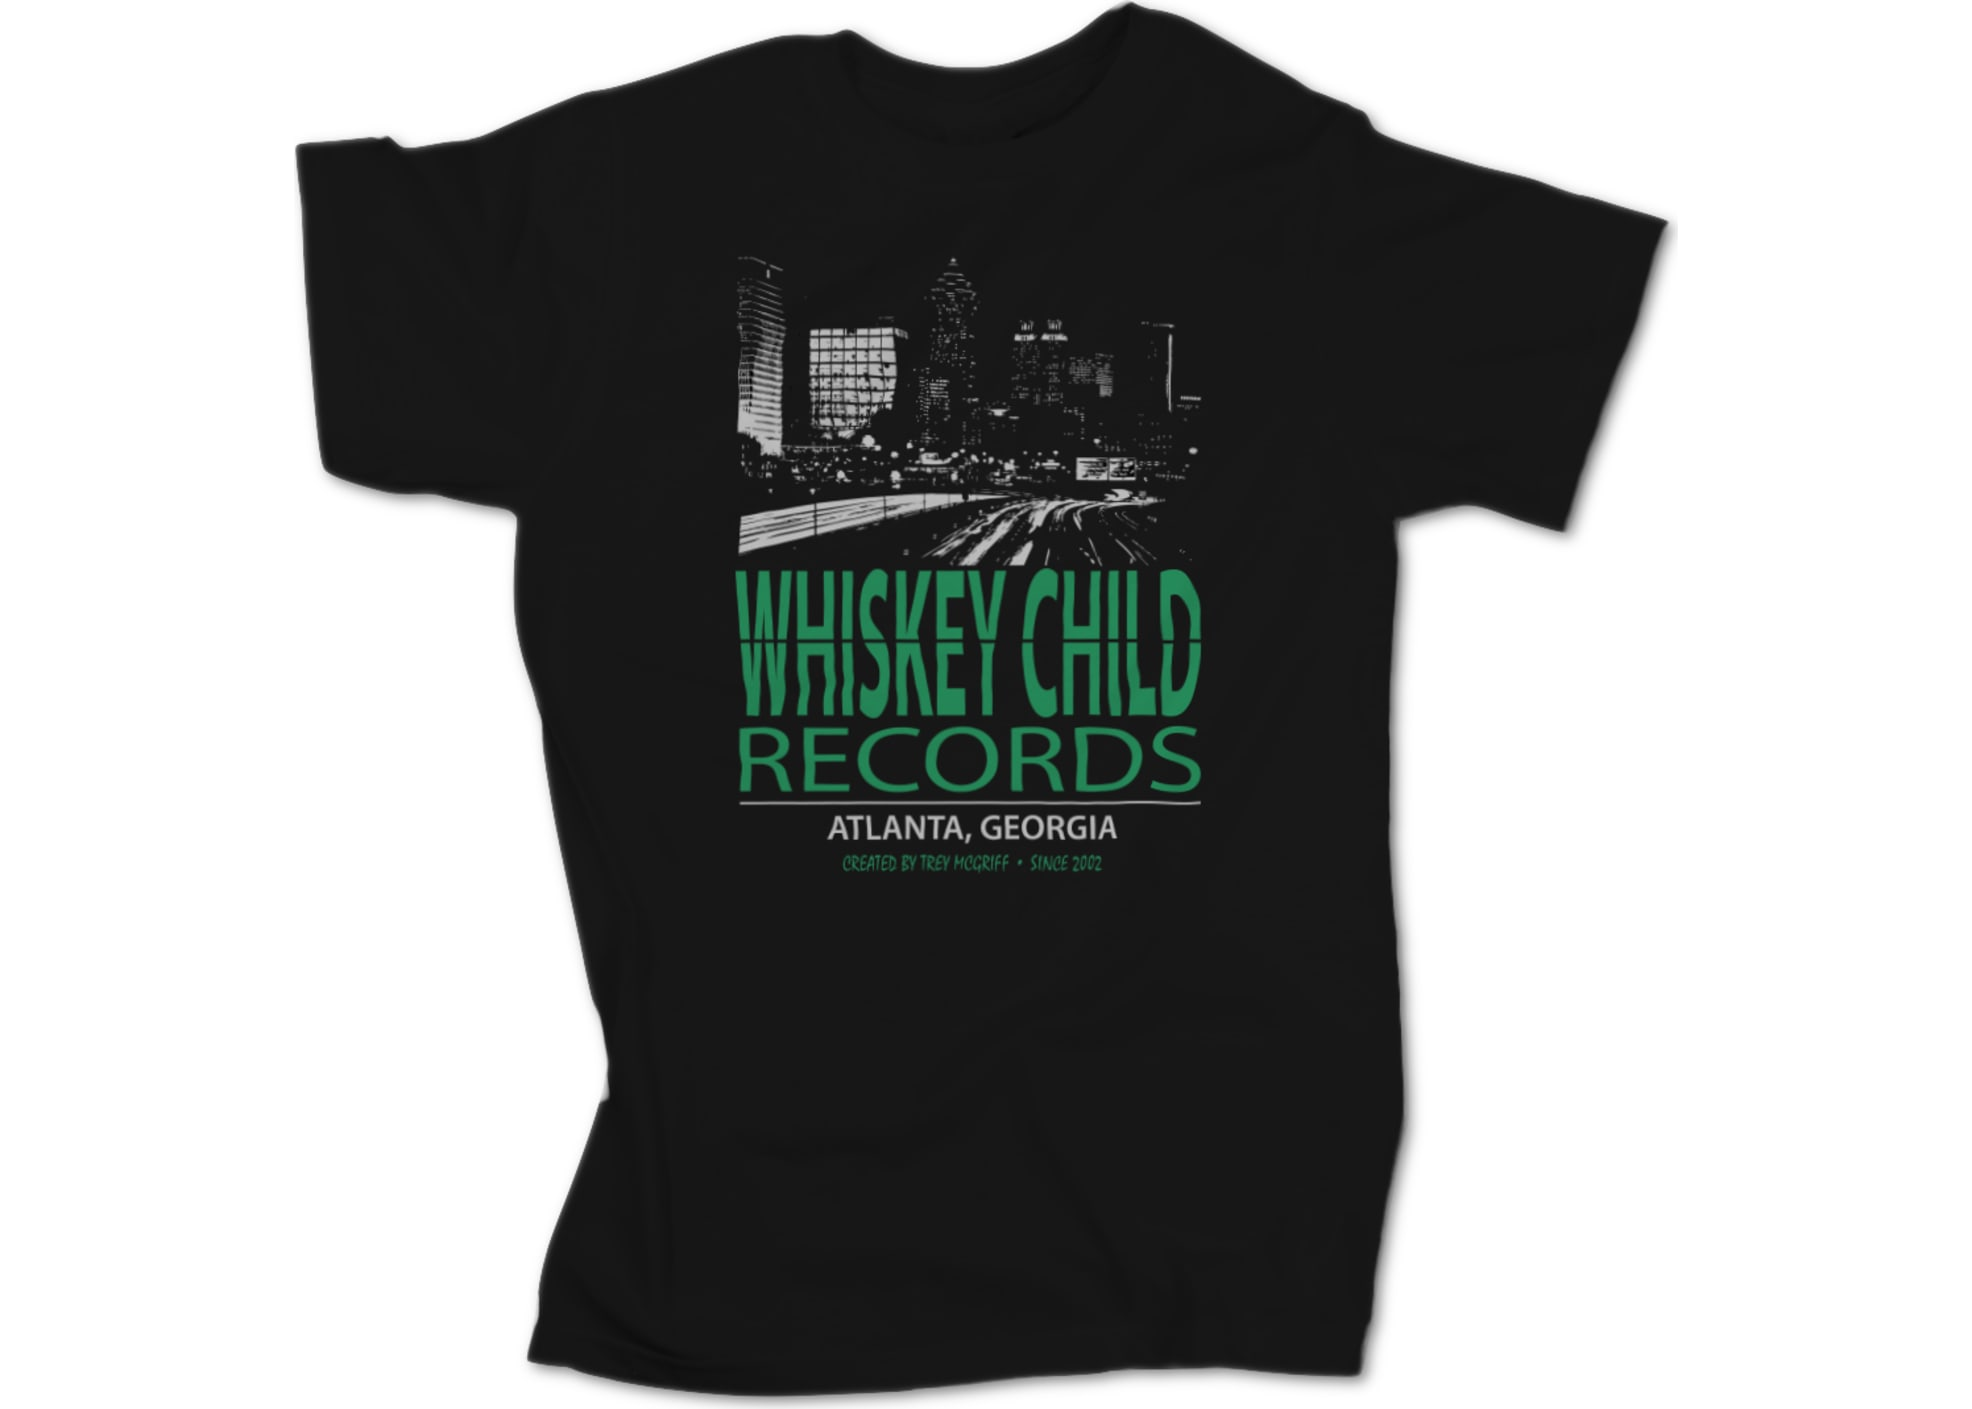 Whiskey child whiskey child   wcr atl design by trey mcgriff 1473515440